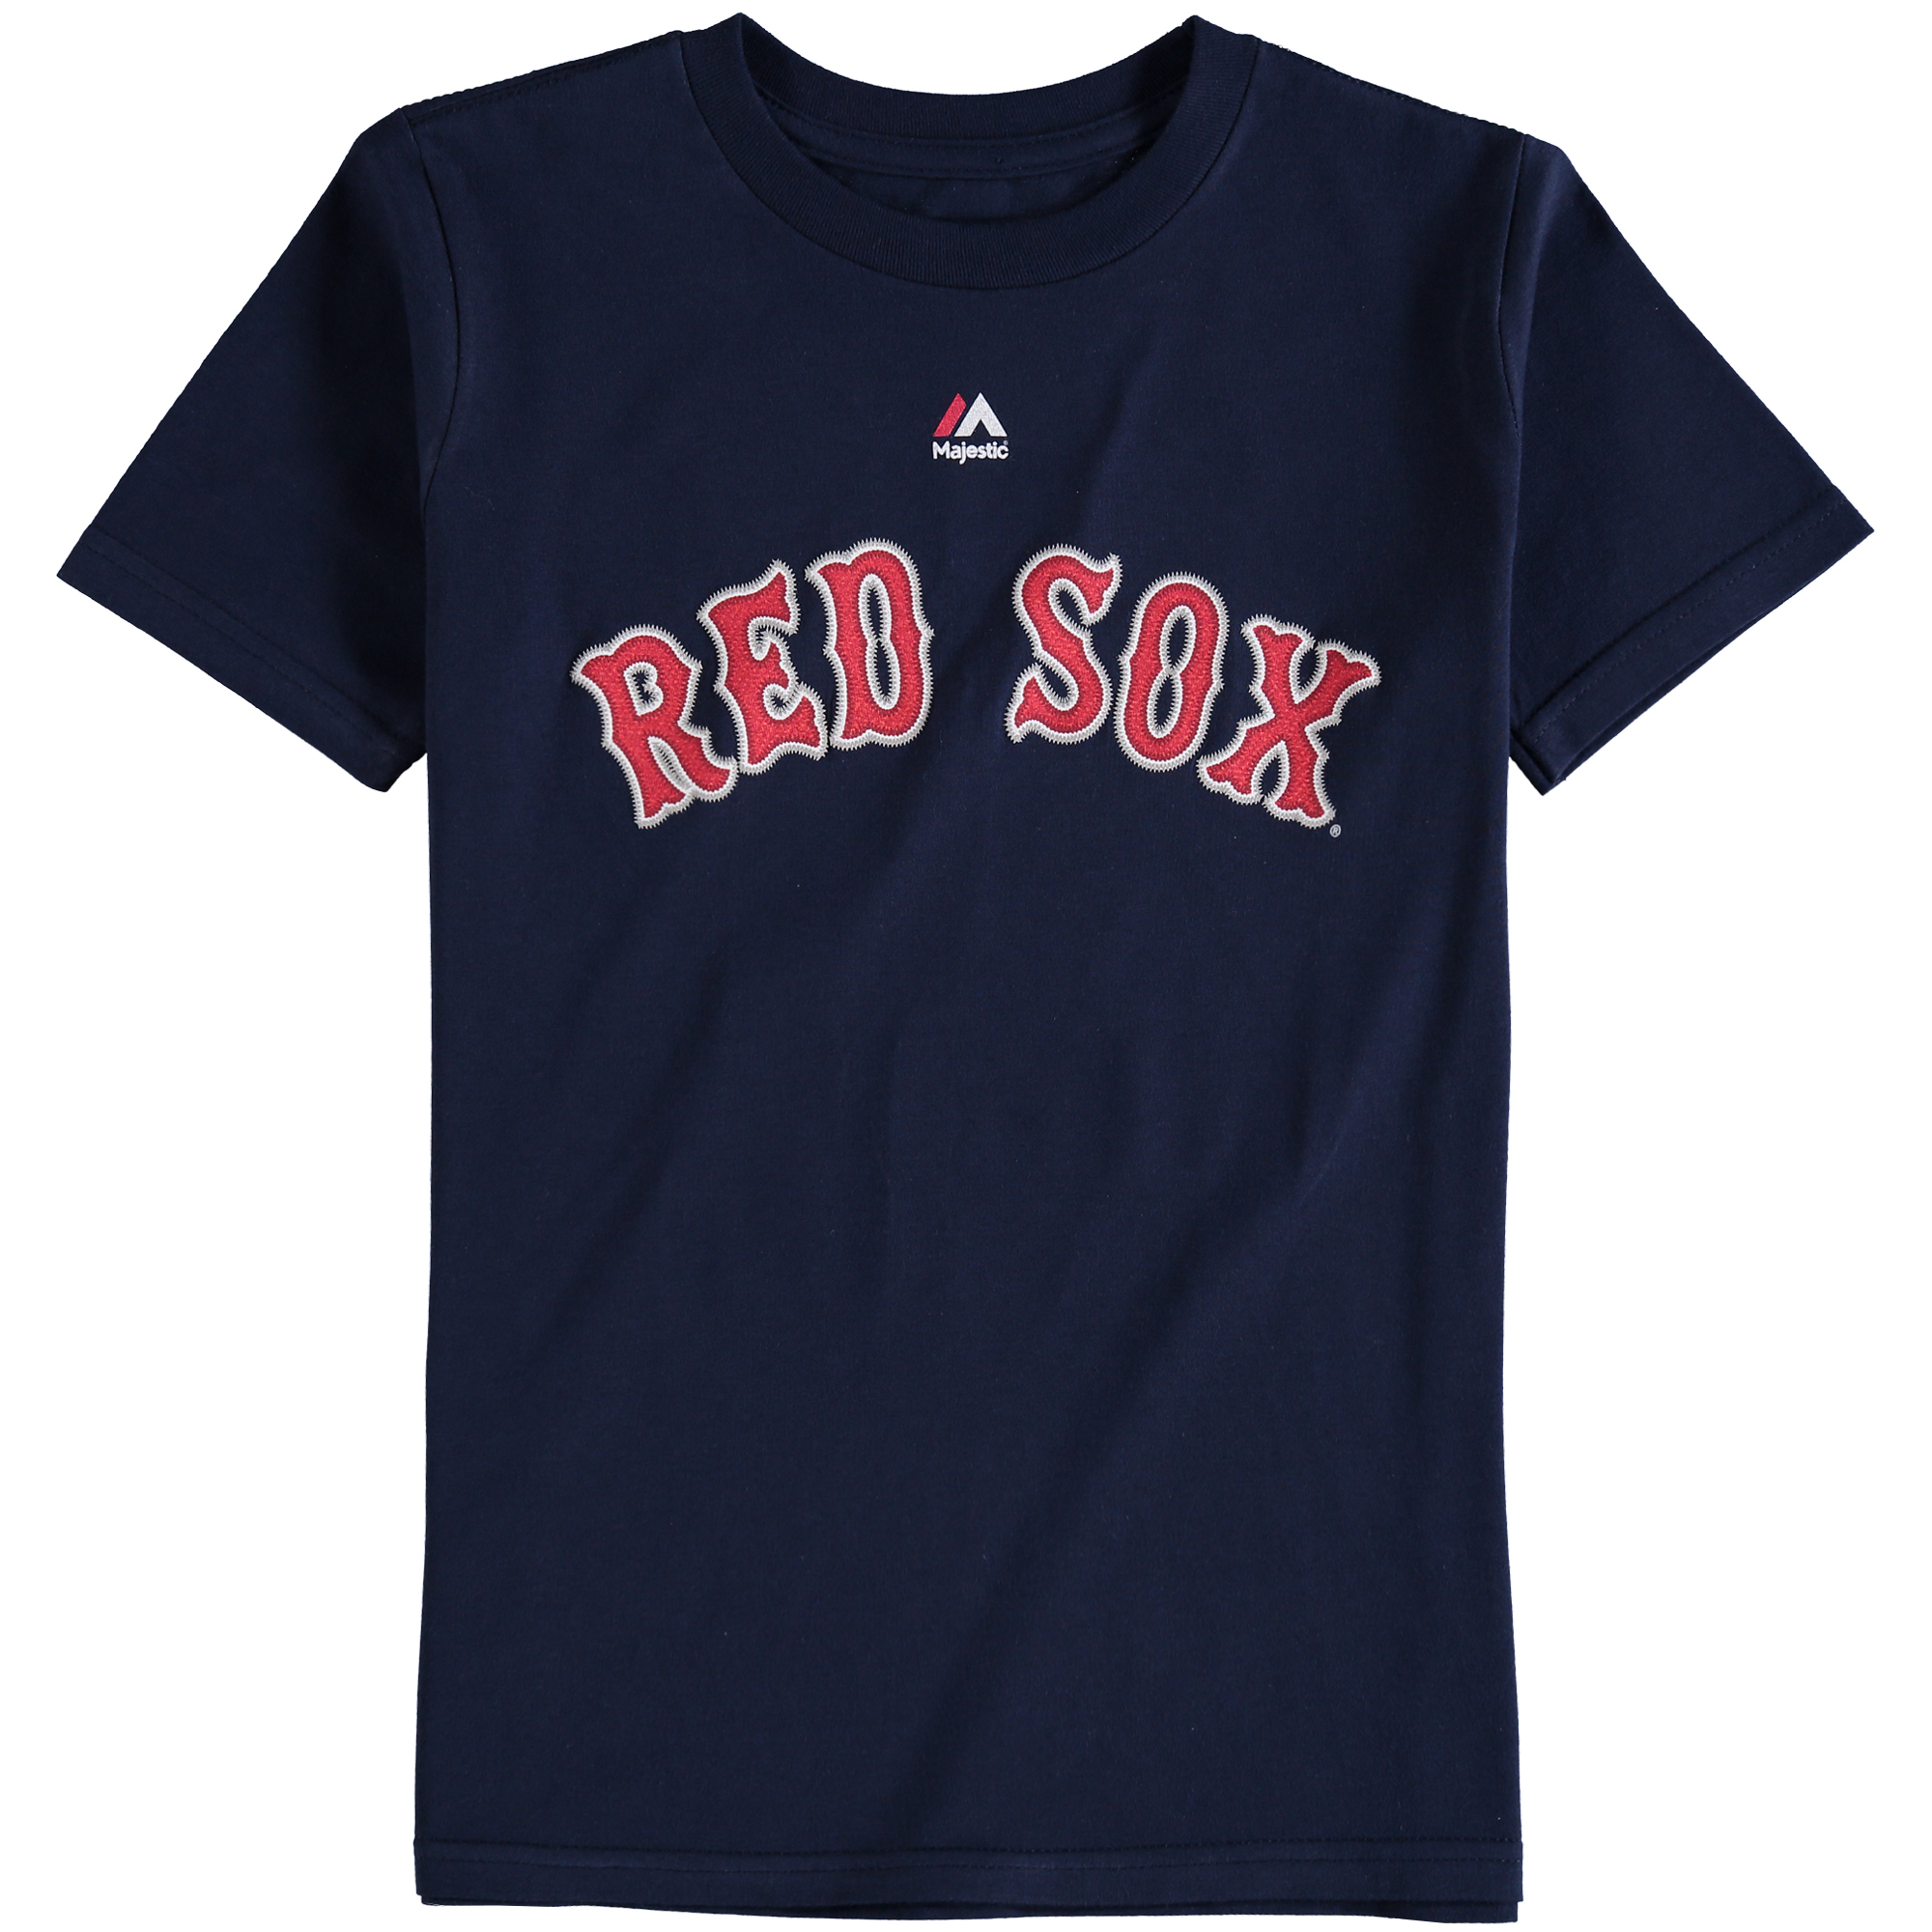 Chris Sale Boston Red Sox Majestic Youth Player Name & Number T-Shirt - Navy